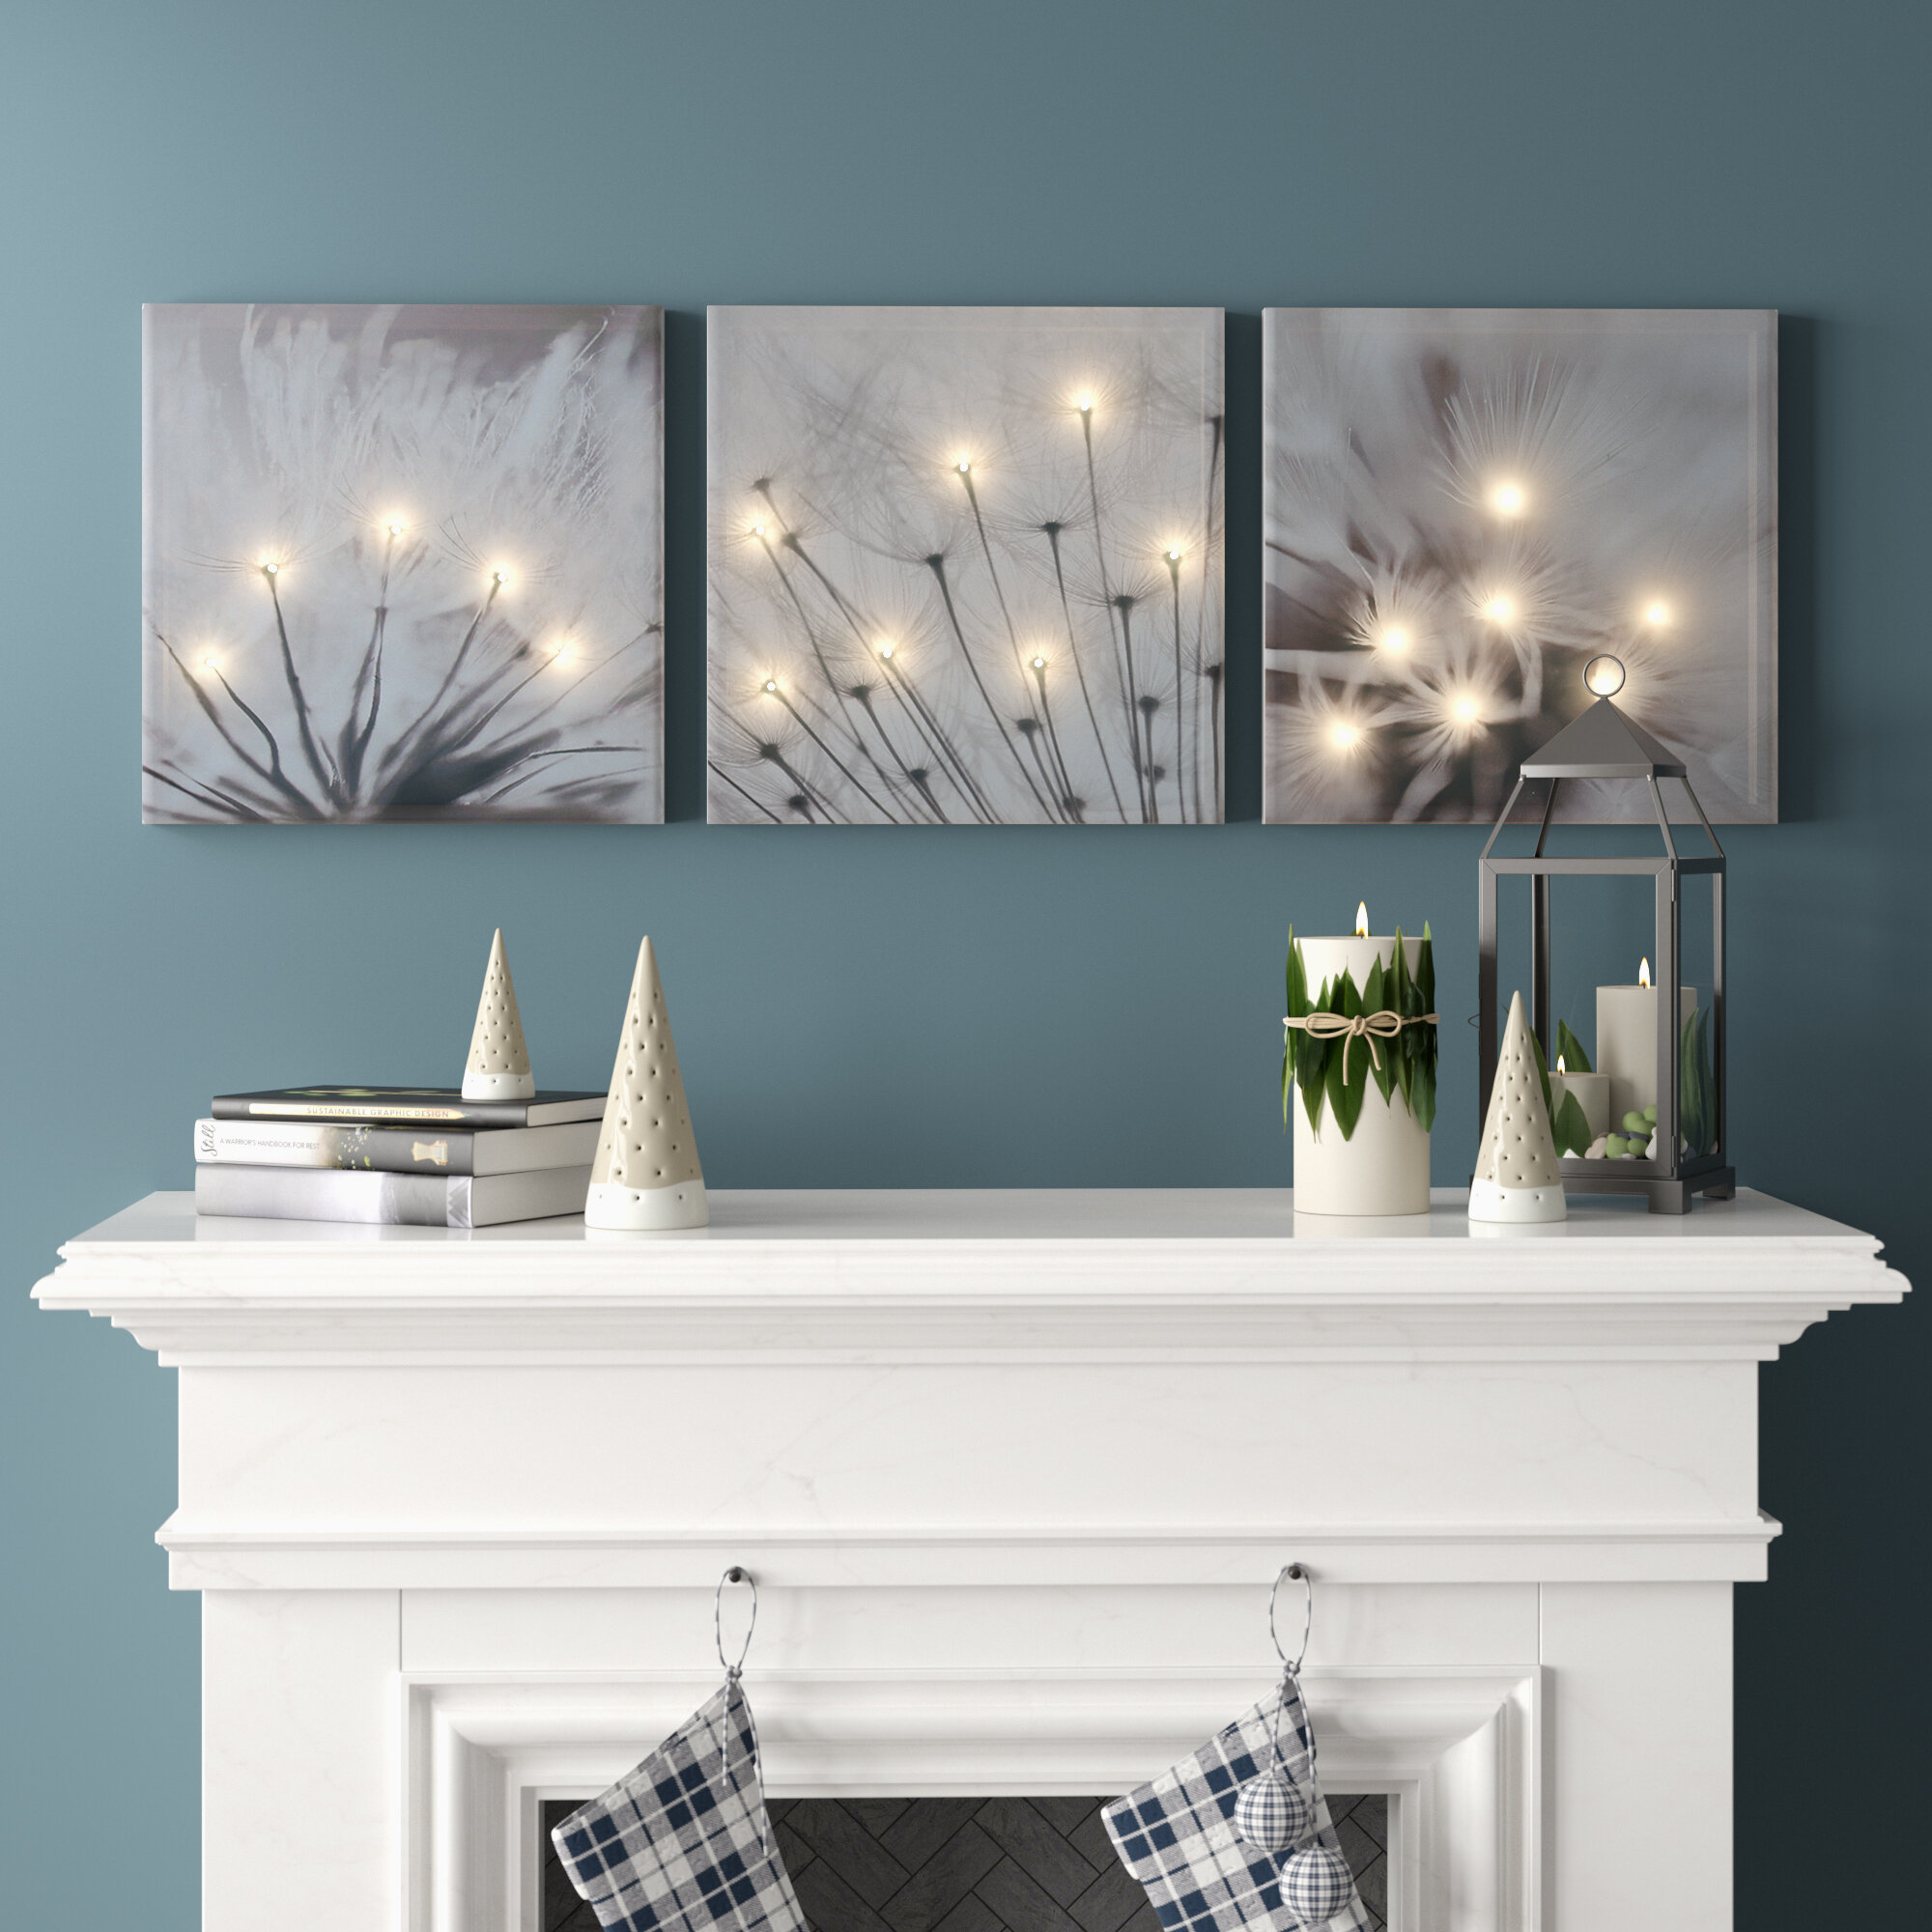 Gallery Wrapped Canvas LED/Illuminated Wall Art You'll Love